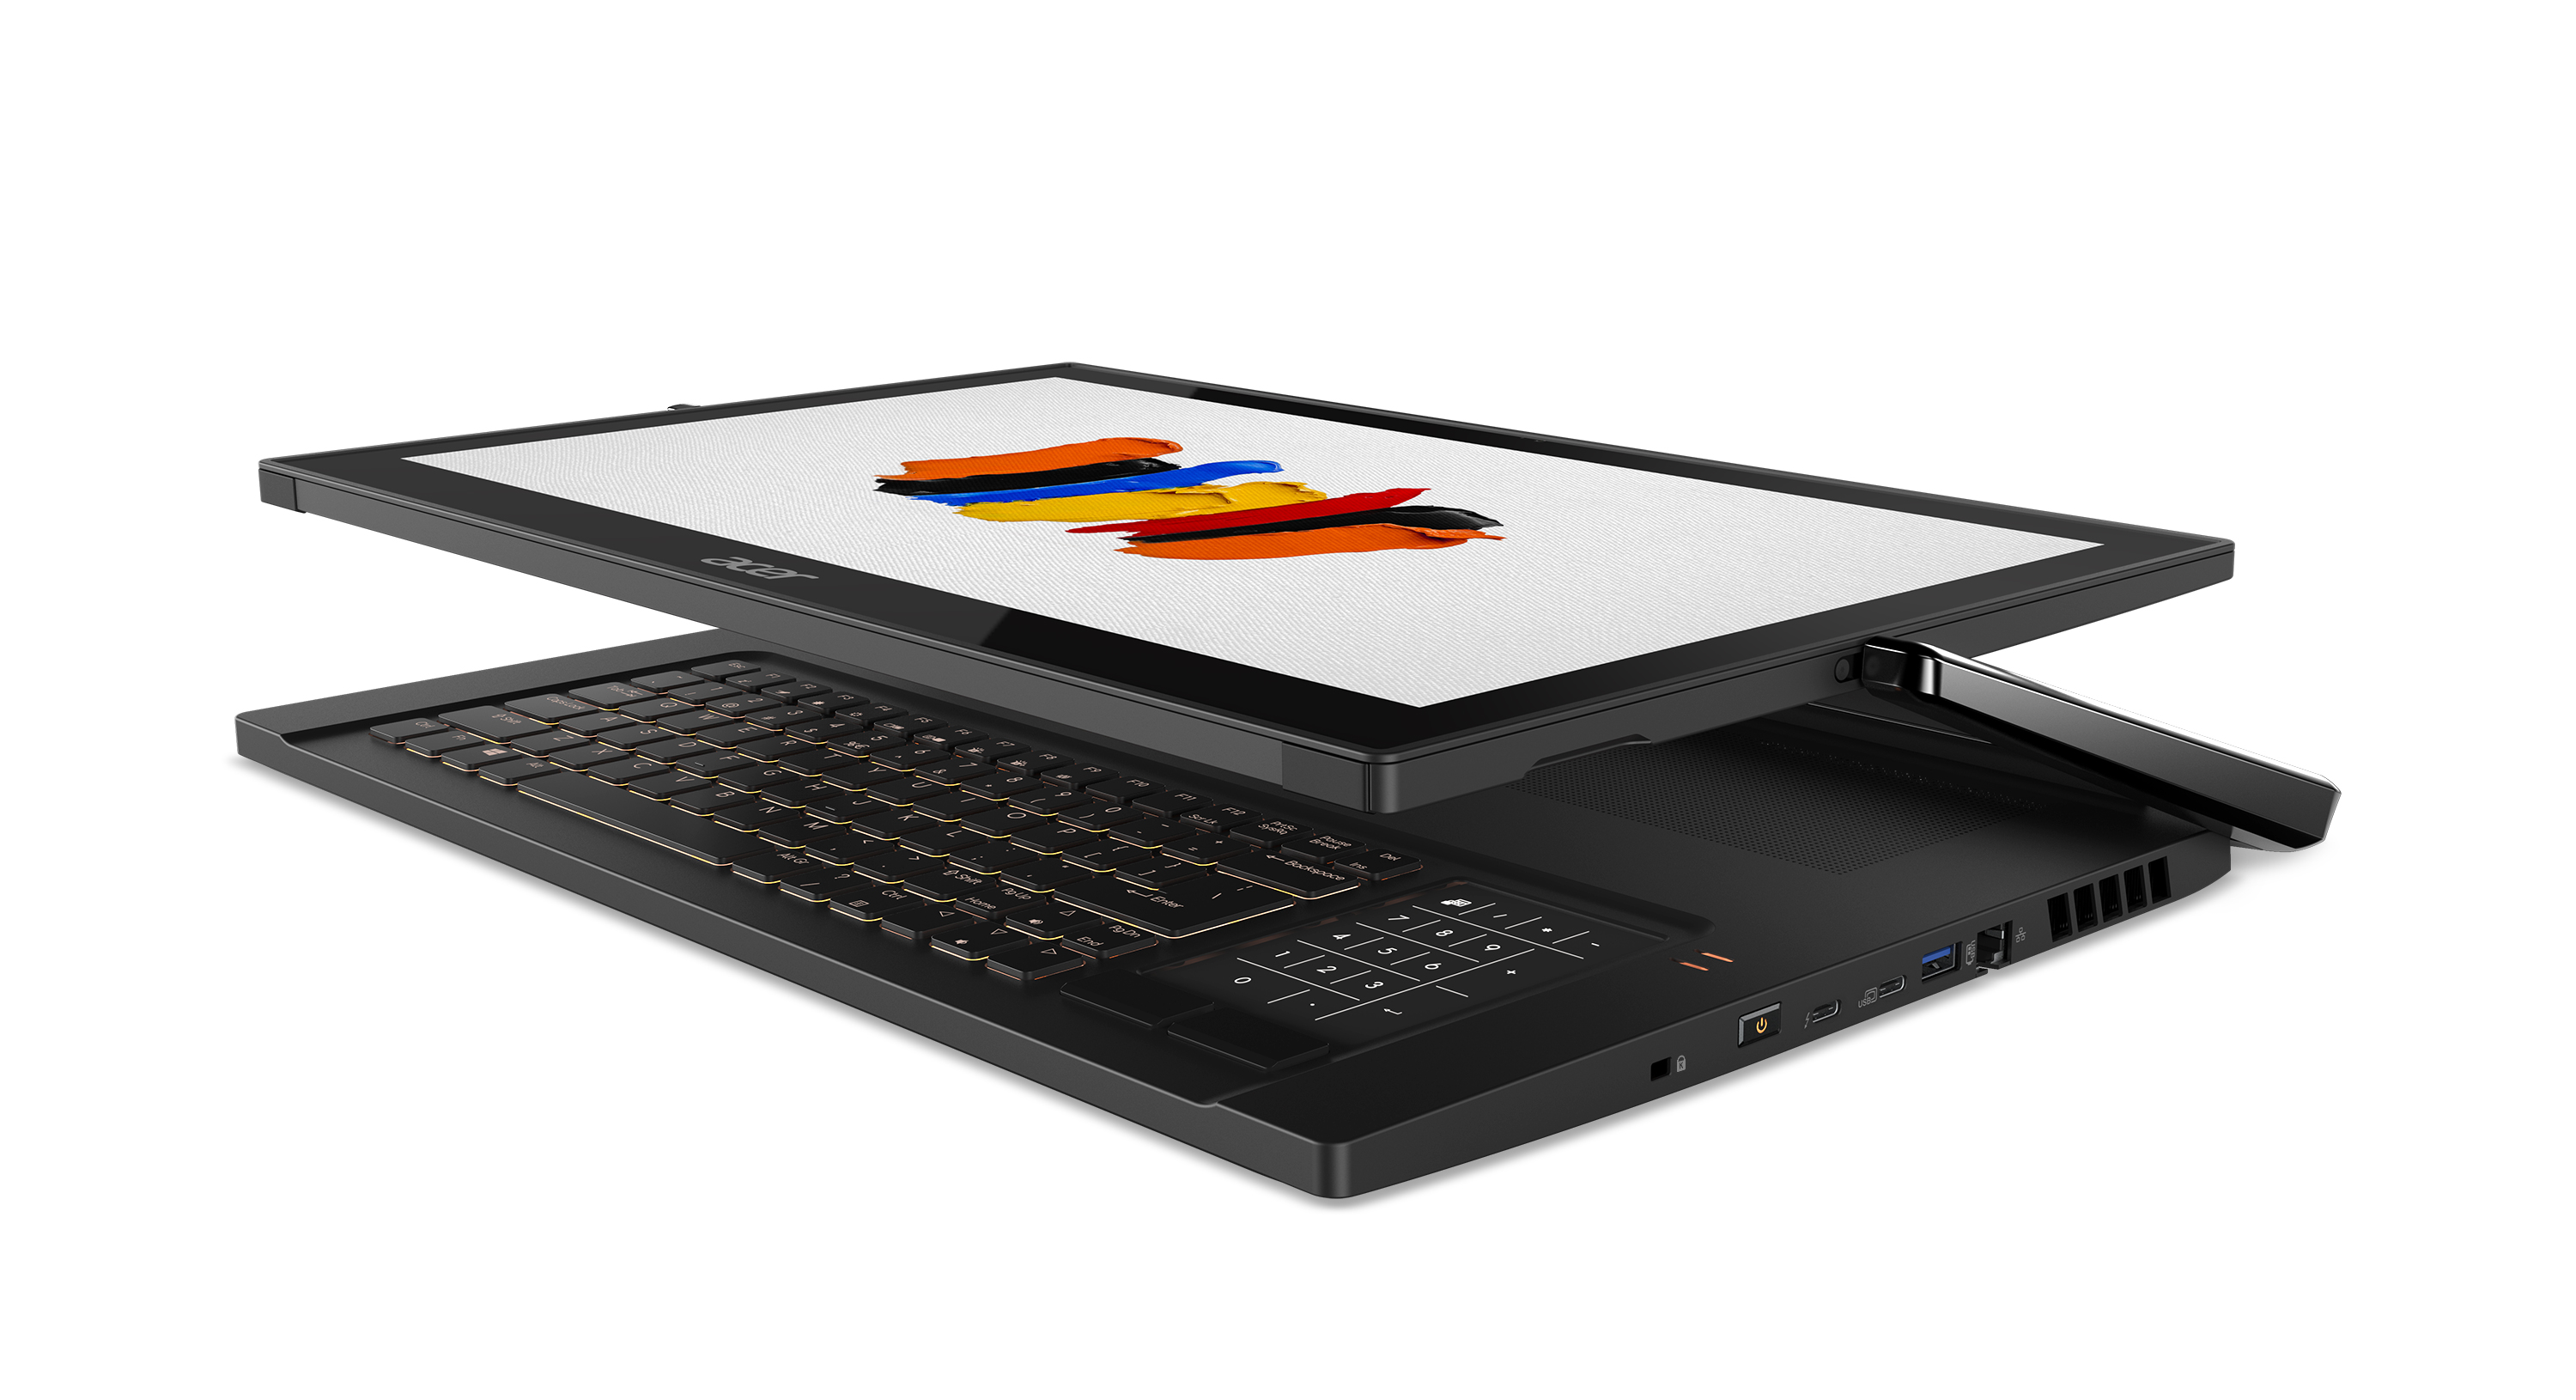 Acer's ConceptD 9 is part laptop, part graphics tablet